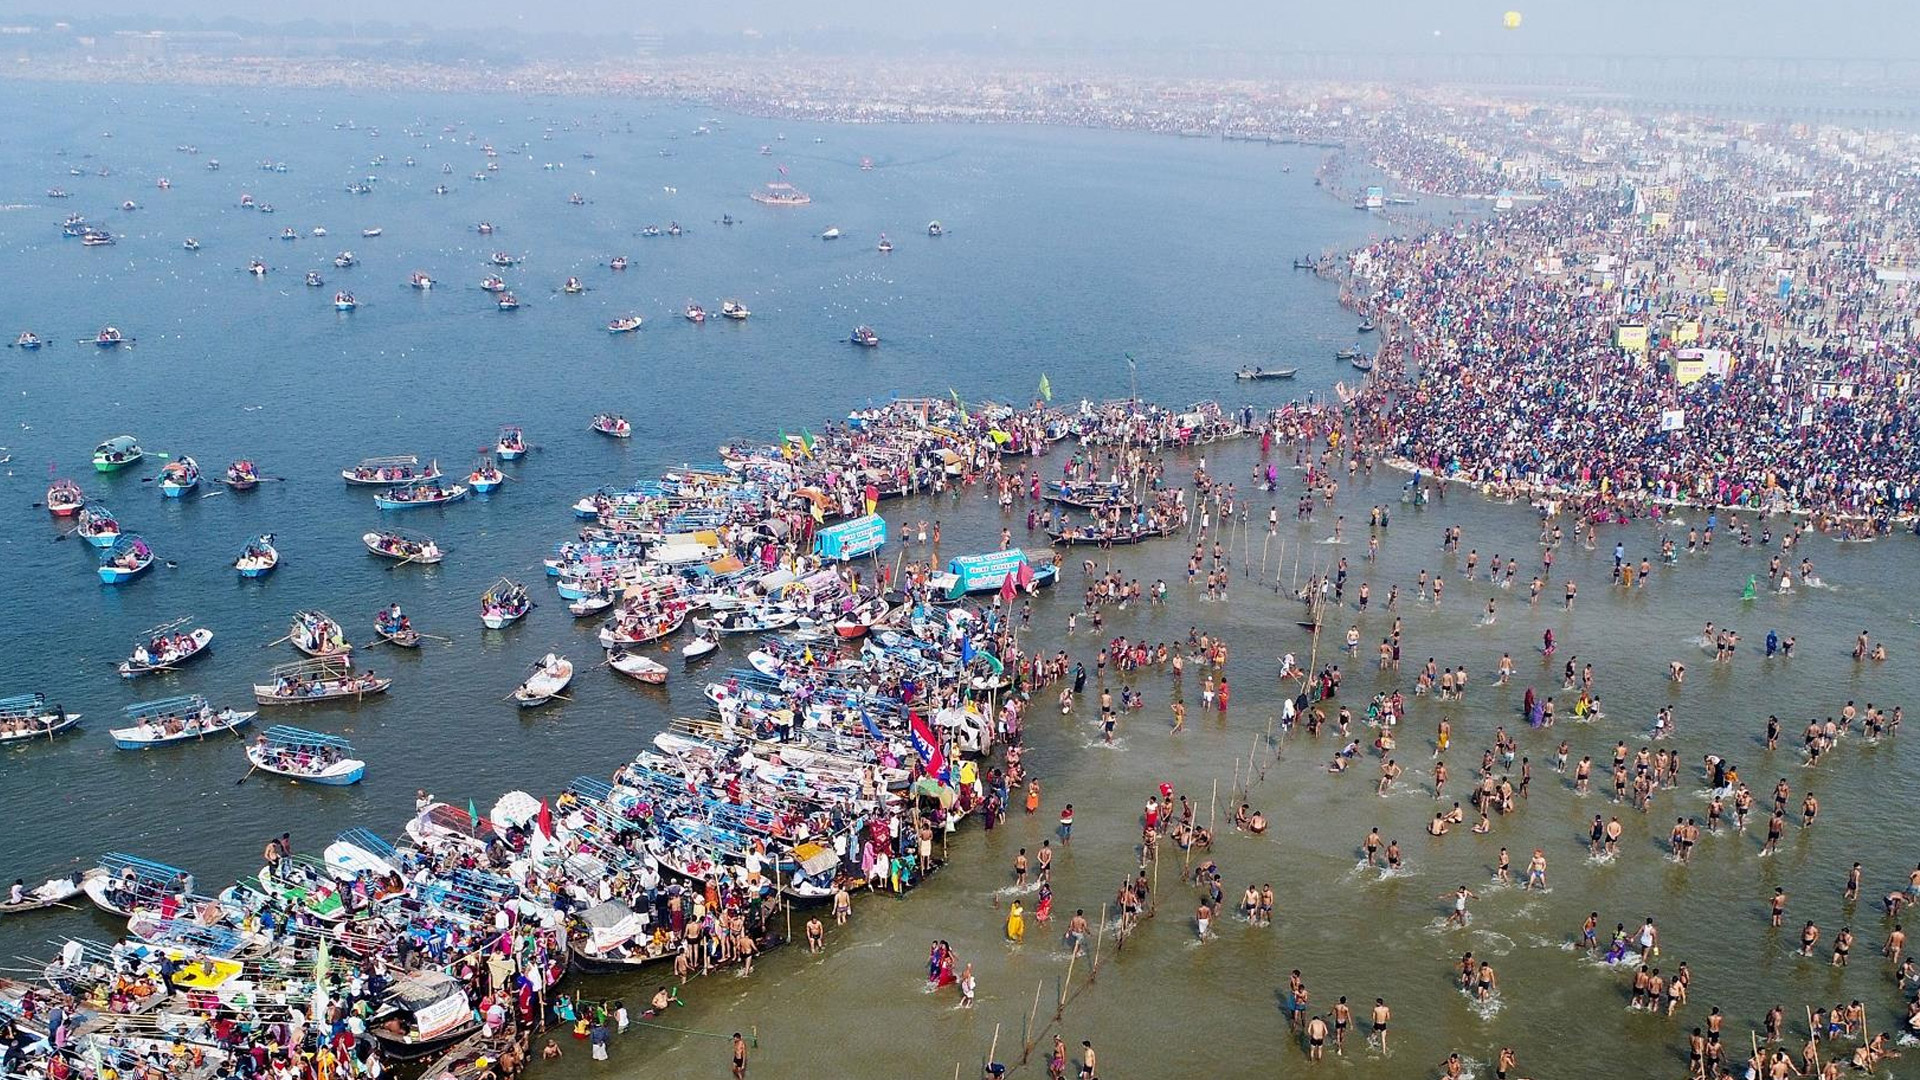 Sangam, Sadhus And Traditions, Kumbh Mela in Prayagraj!